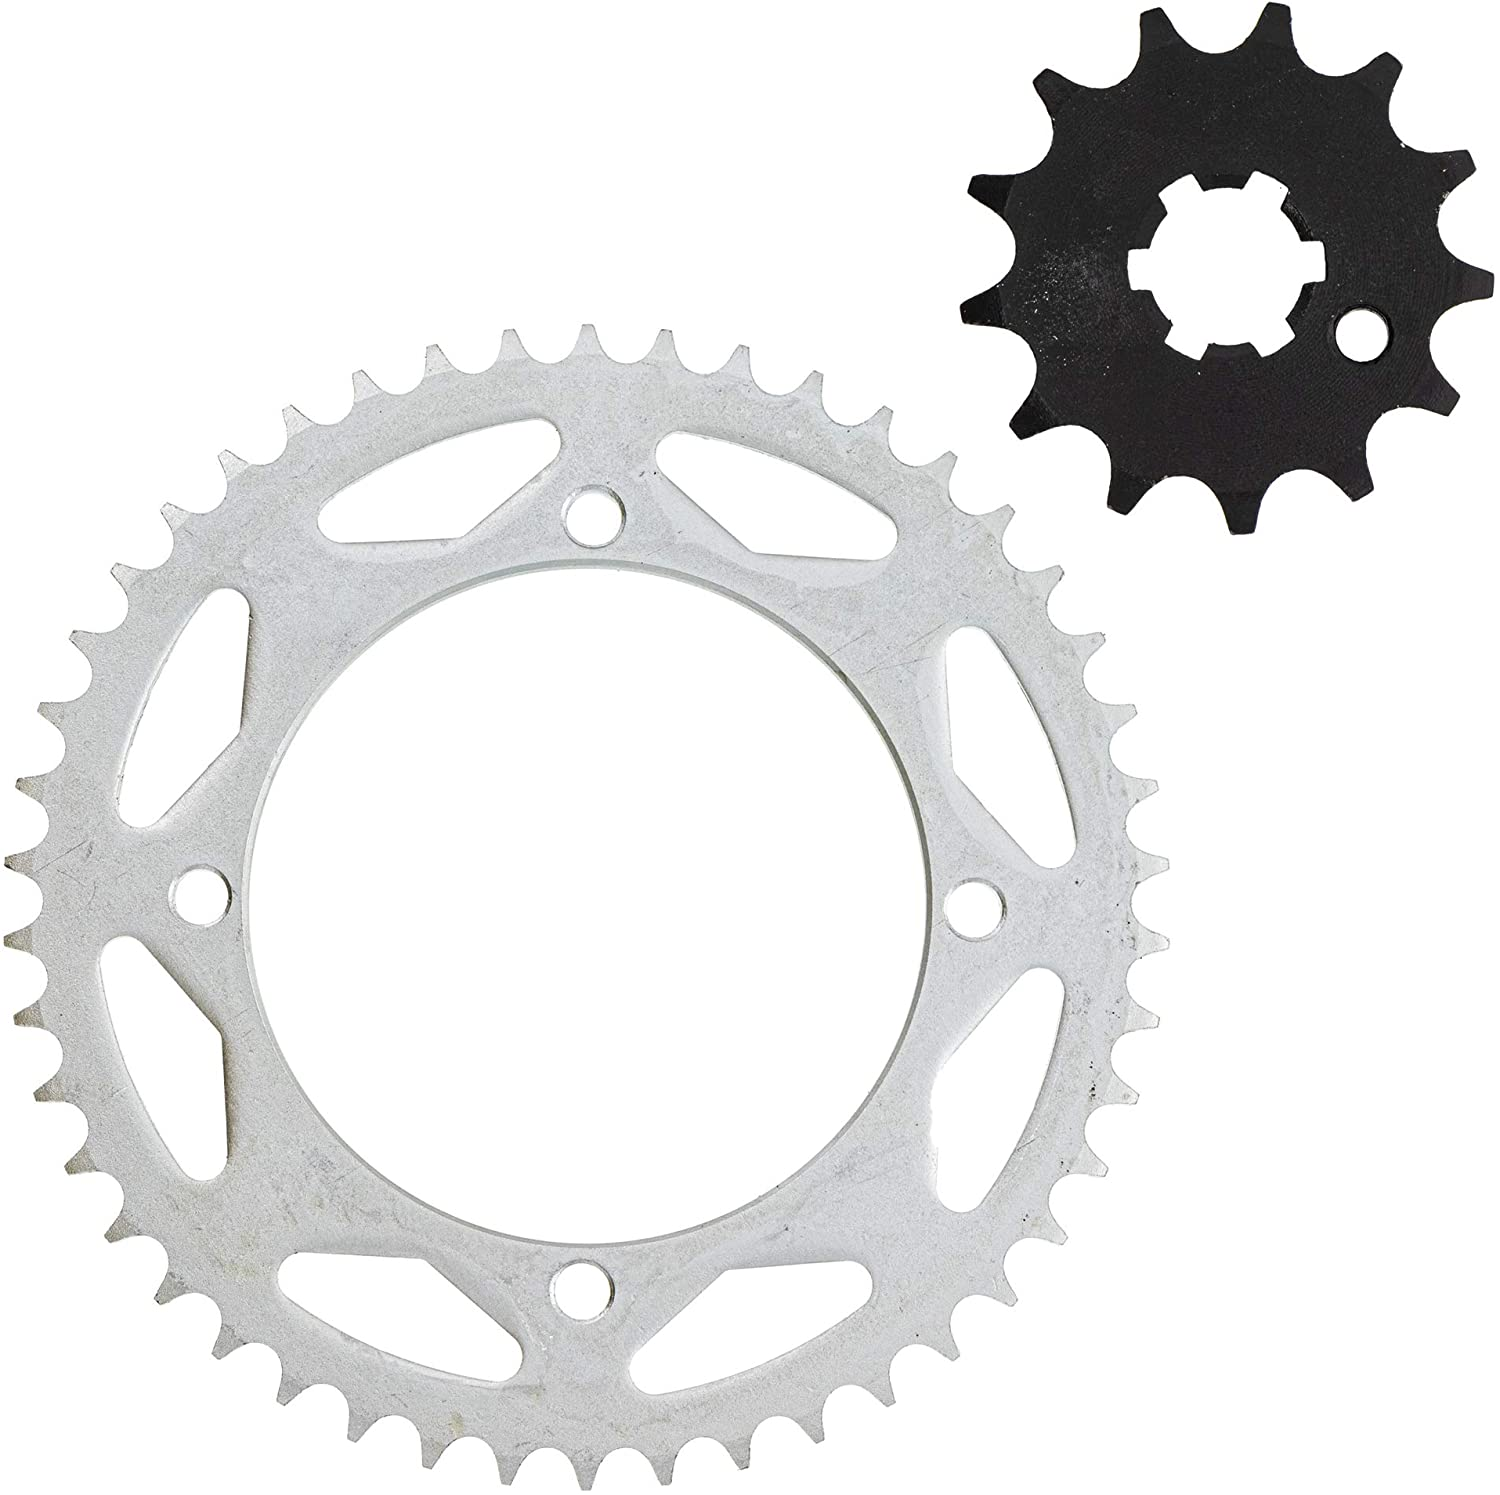 NICHE 428 Pitch Front 13T Rear 46T Drive Sprocket Kit For 2000-2001 Kawasaki KX65